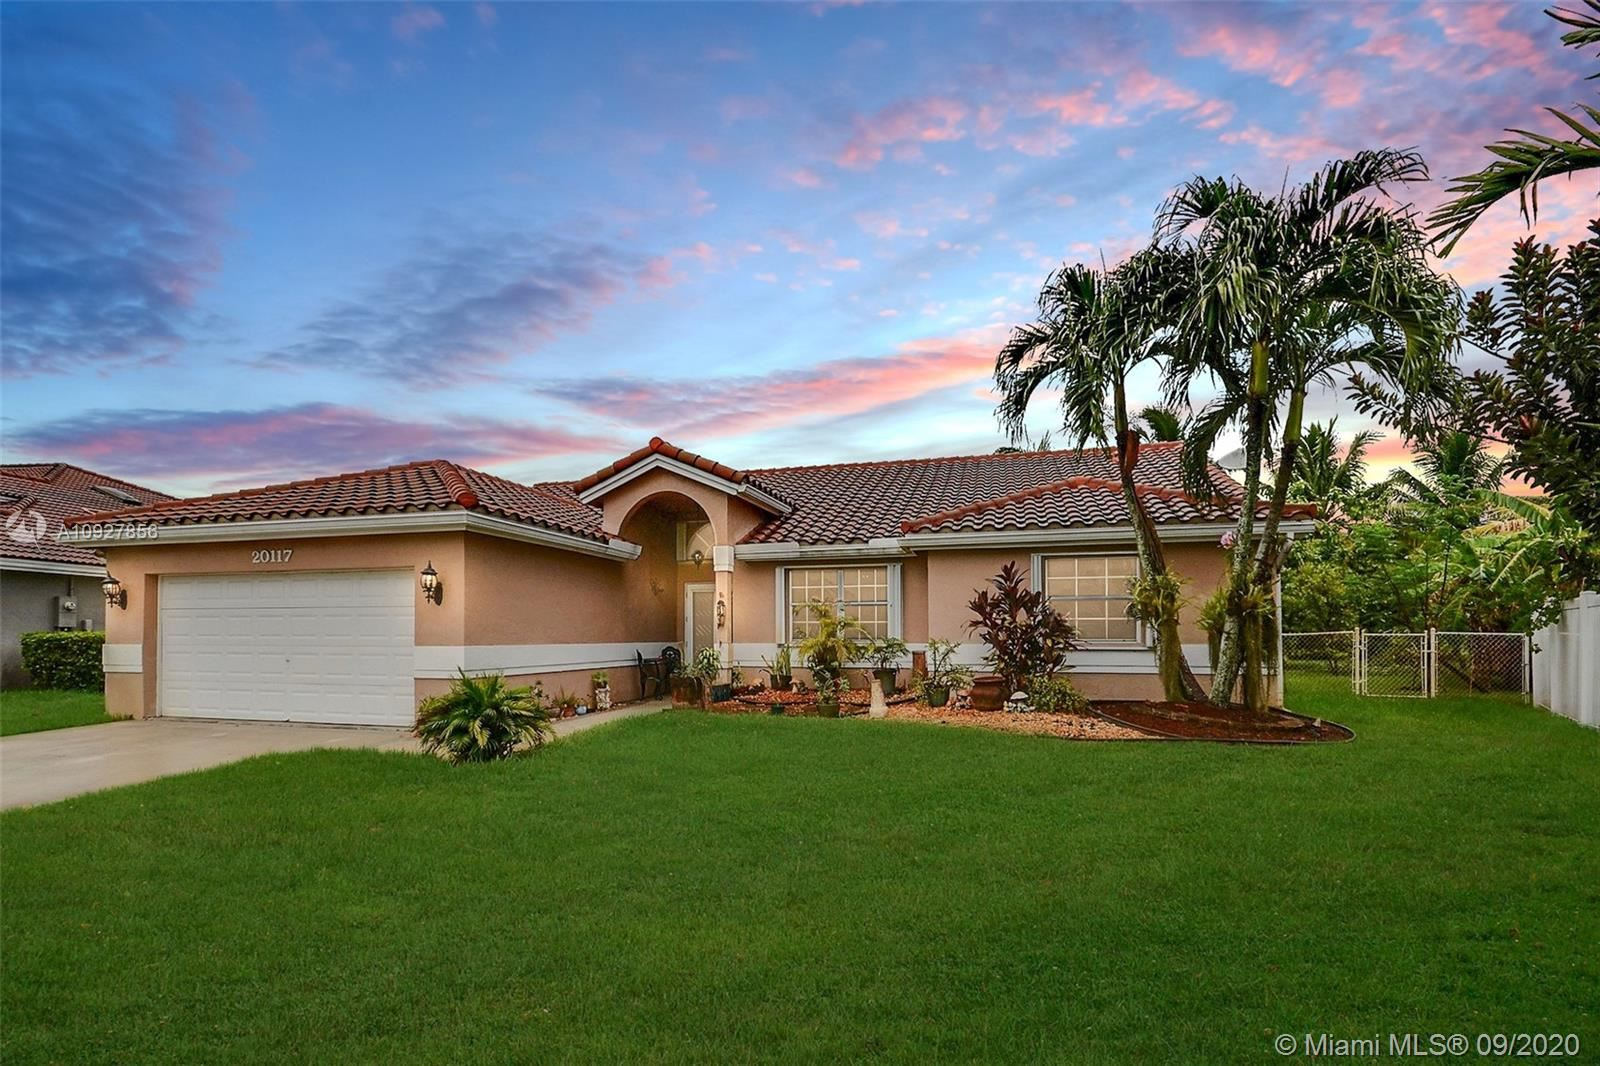 20117 NW 9th Ct, Pembroke Pines, FL 33029 - #: A10927856